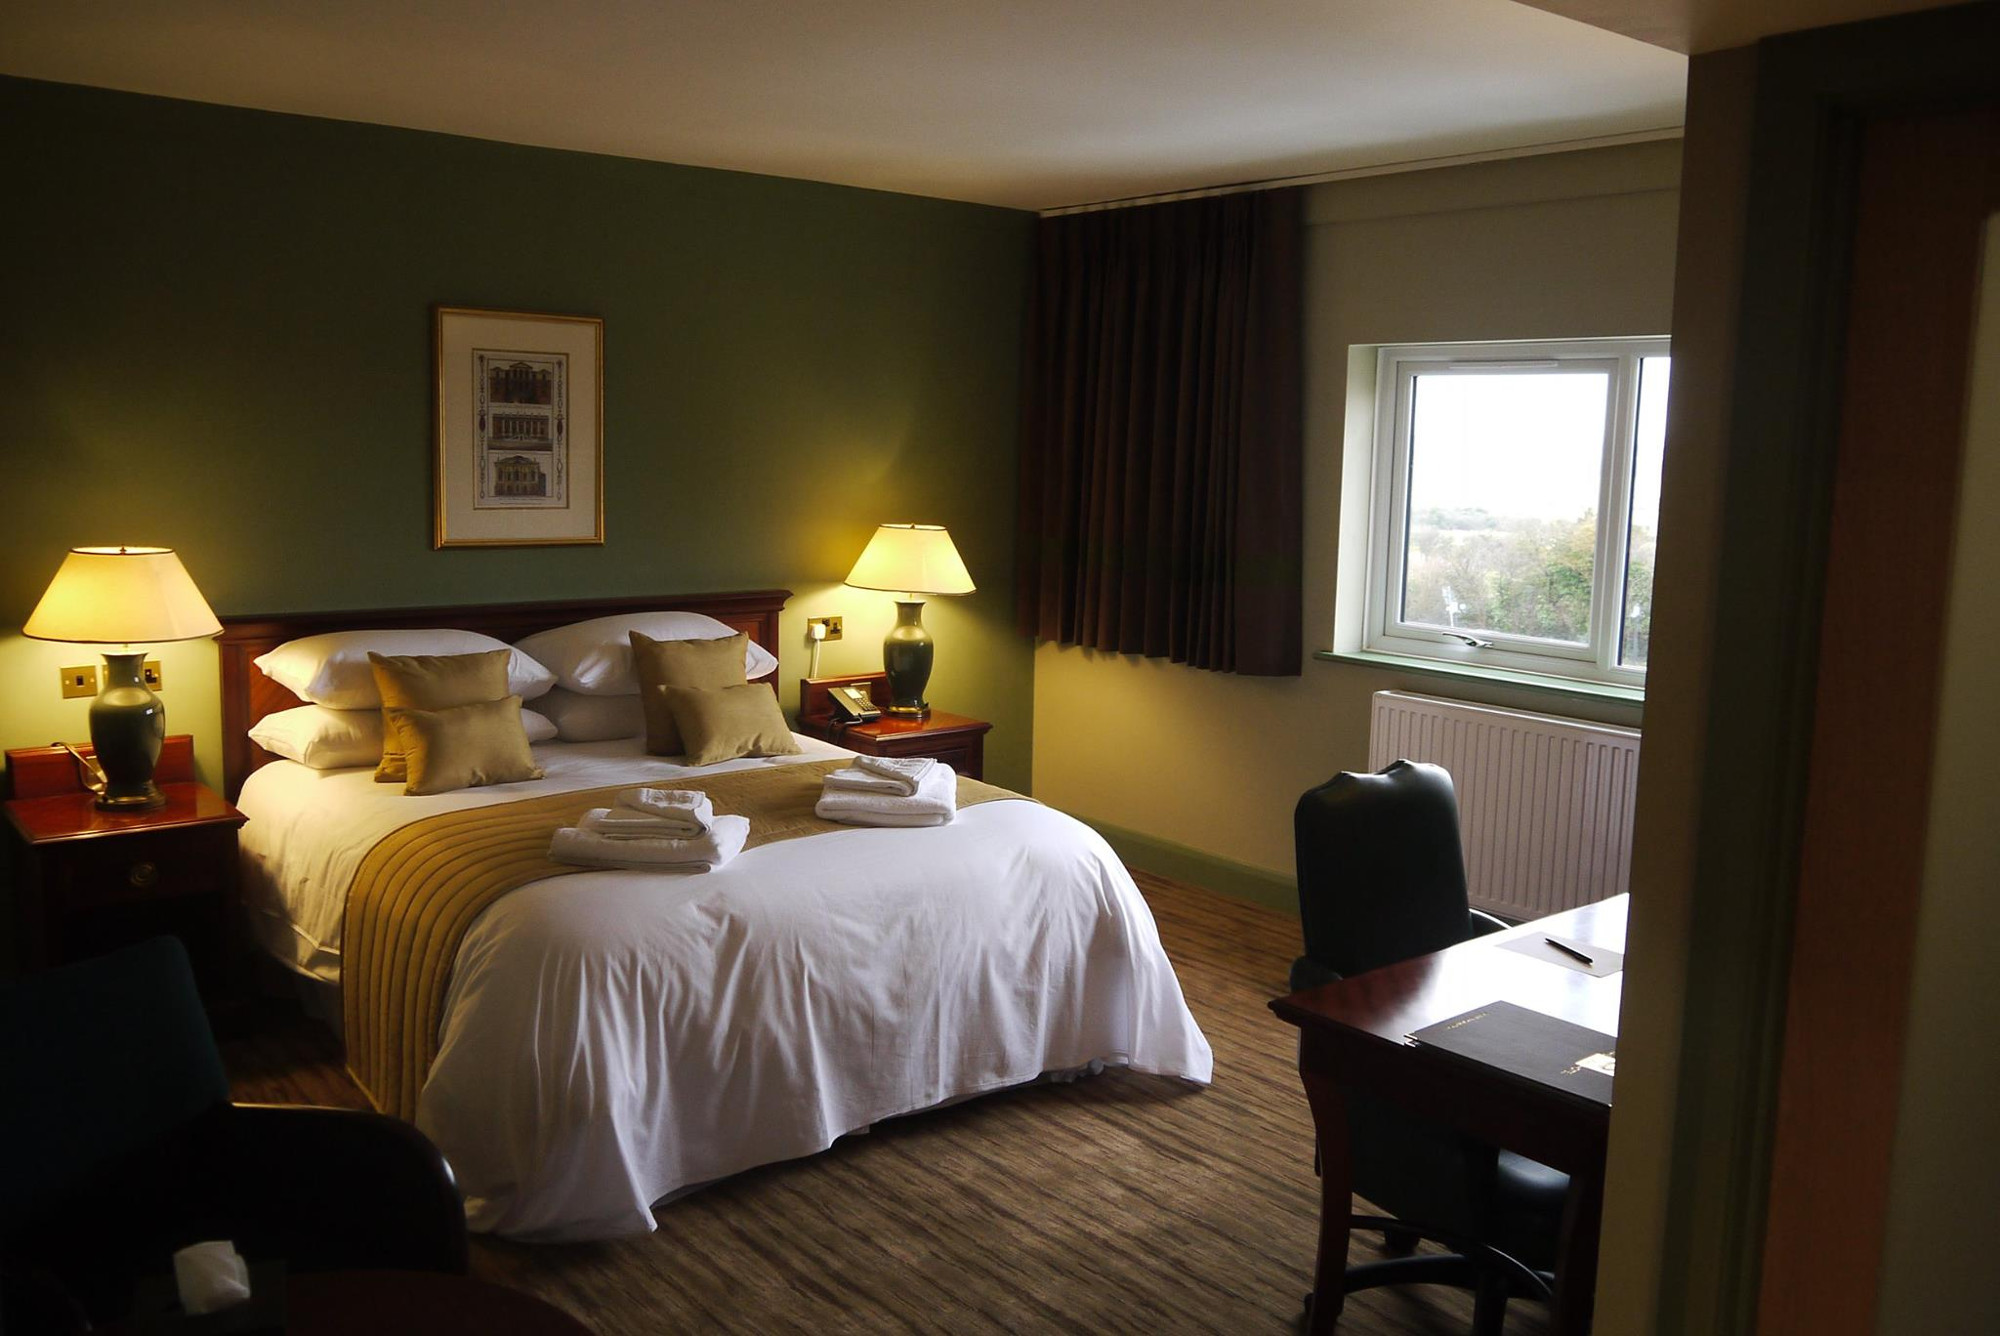 Best hotels in Salisbury - The Stones Hotel